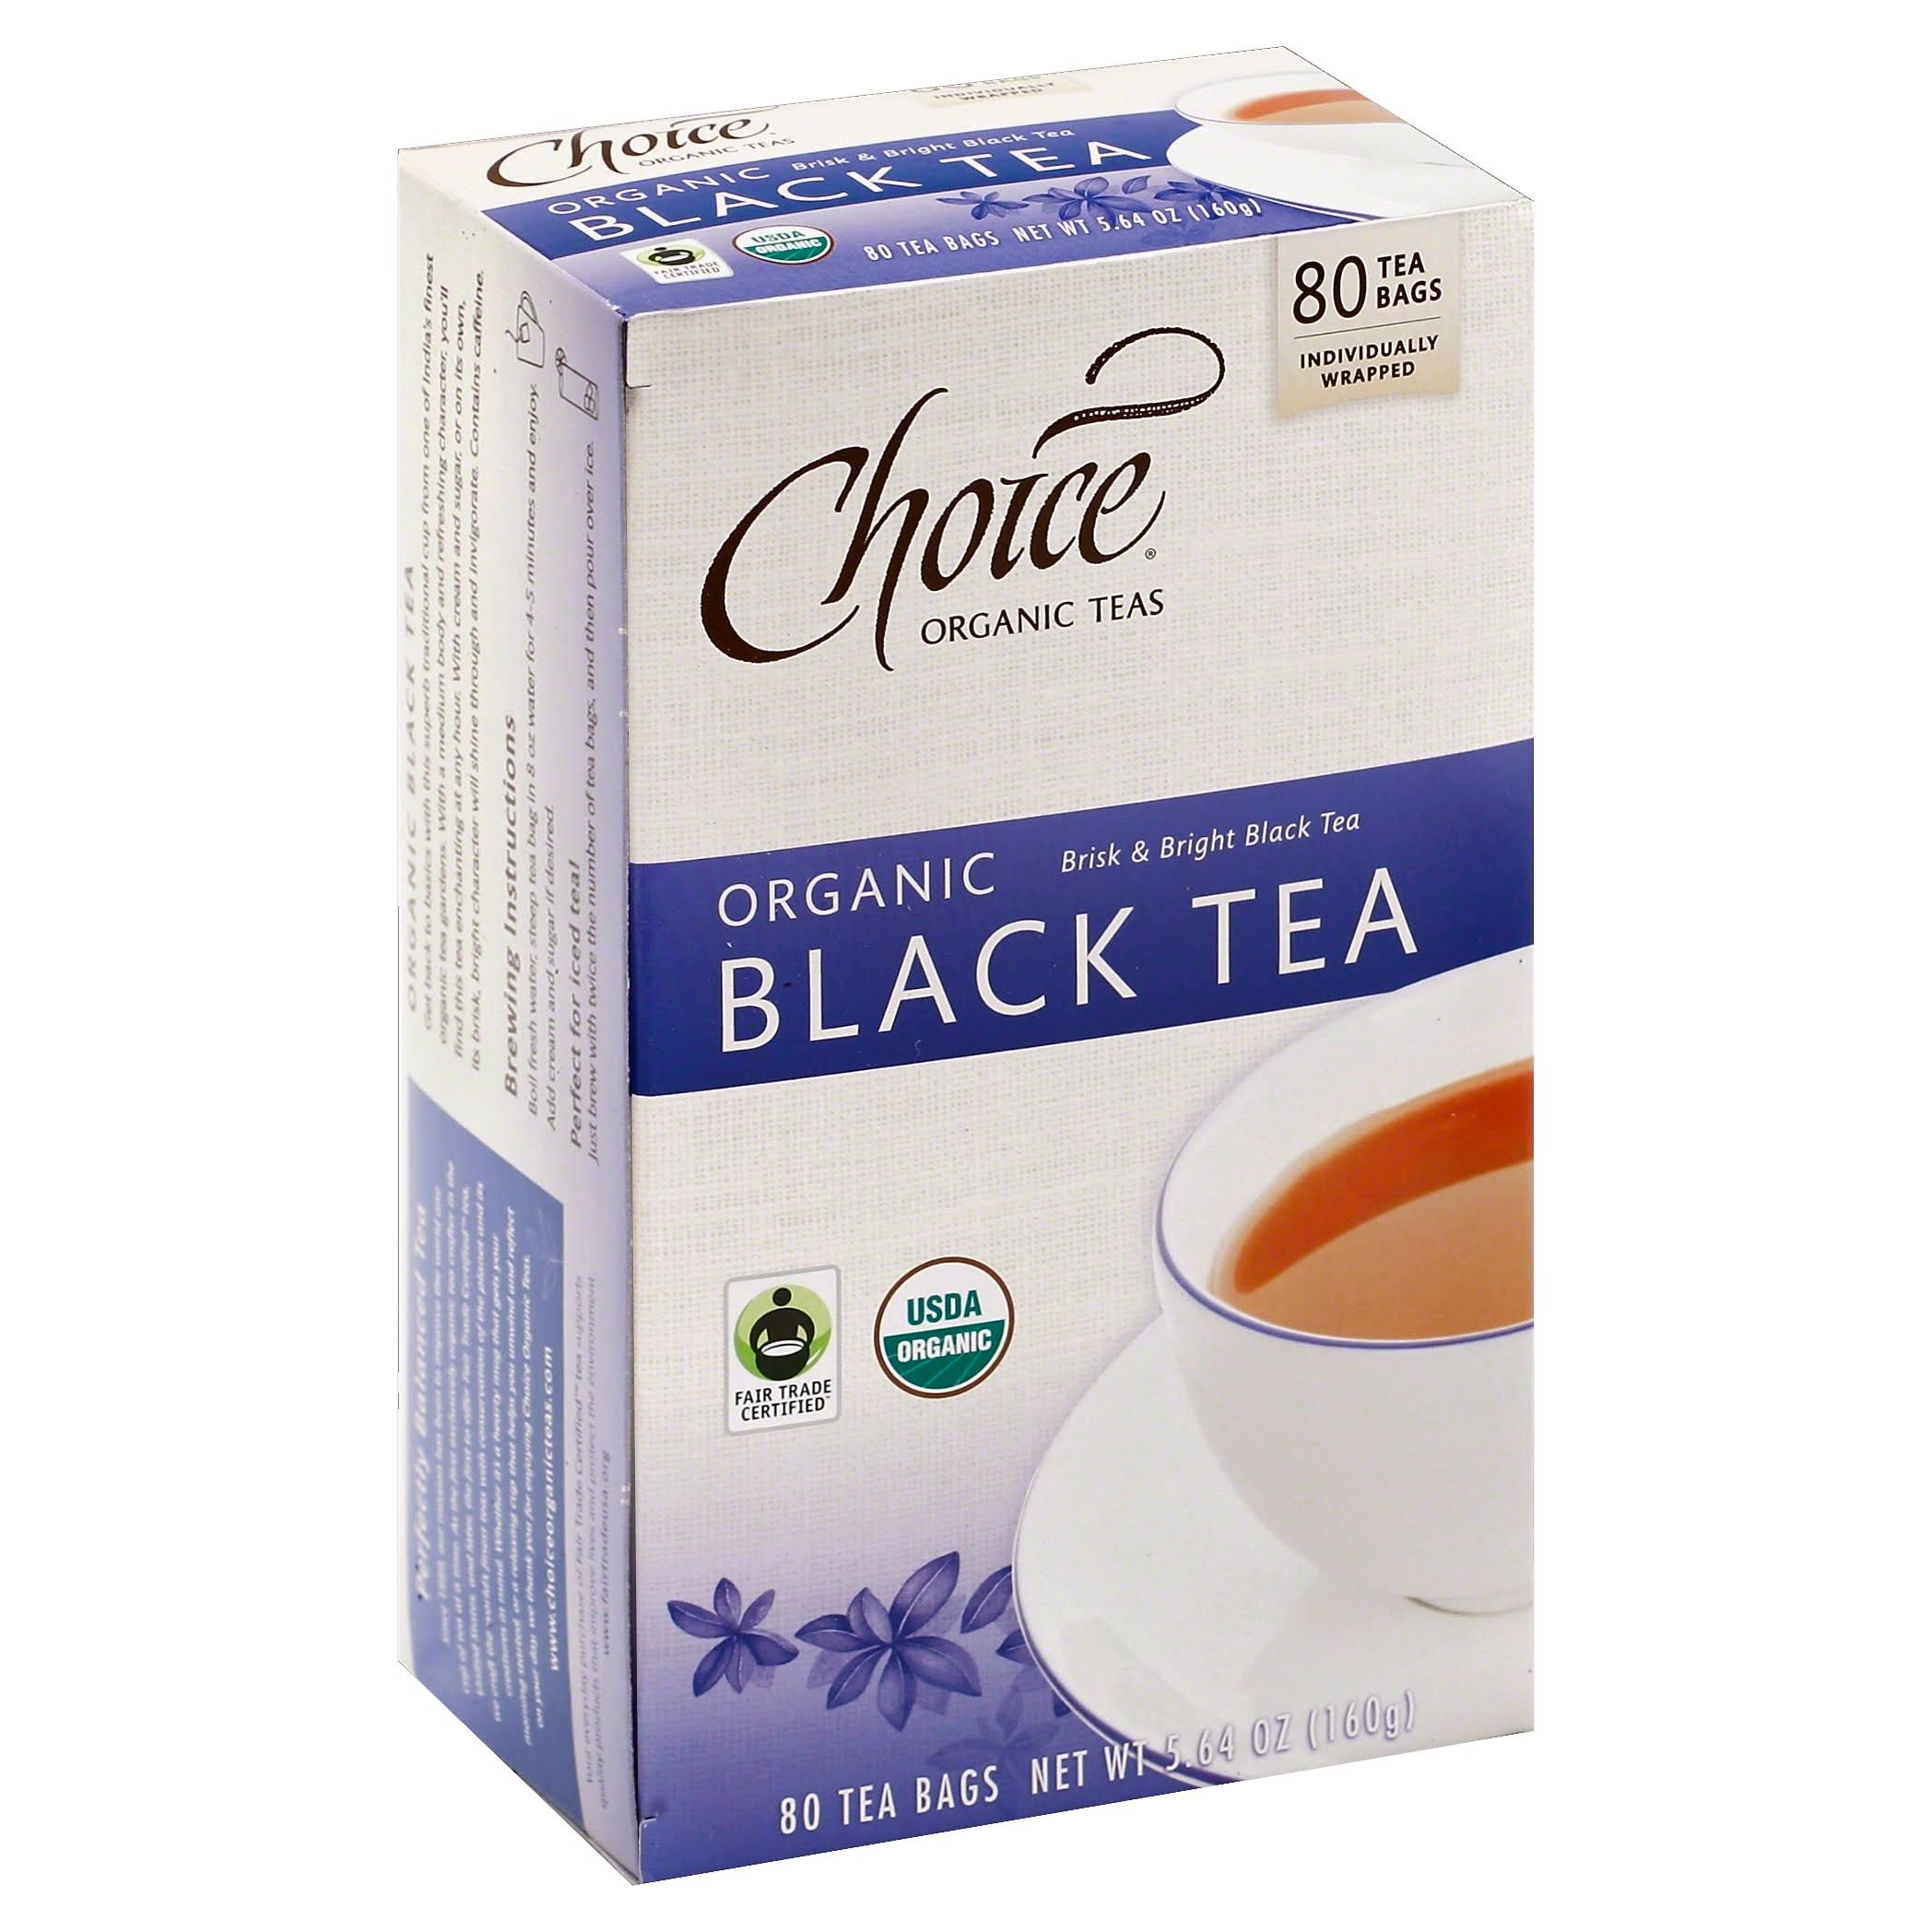 Choice Organic Teas Black Tea, Organic, Tea Bags - 80 bags, 5.64 oz